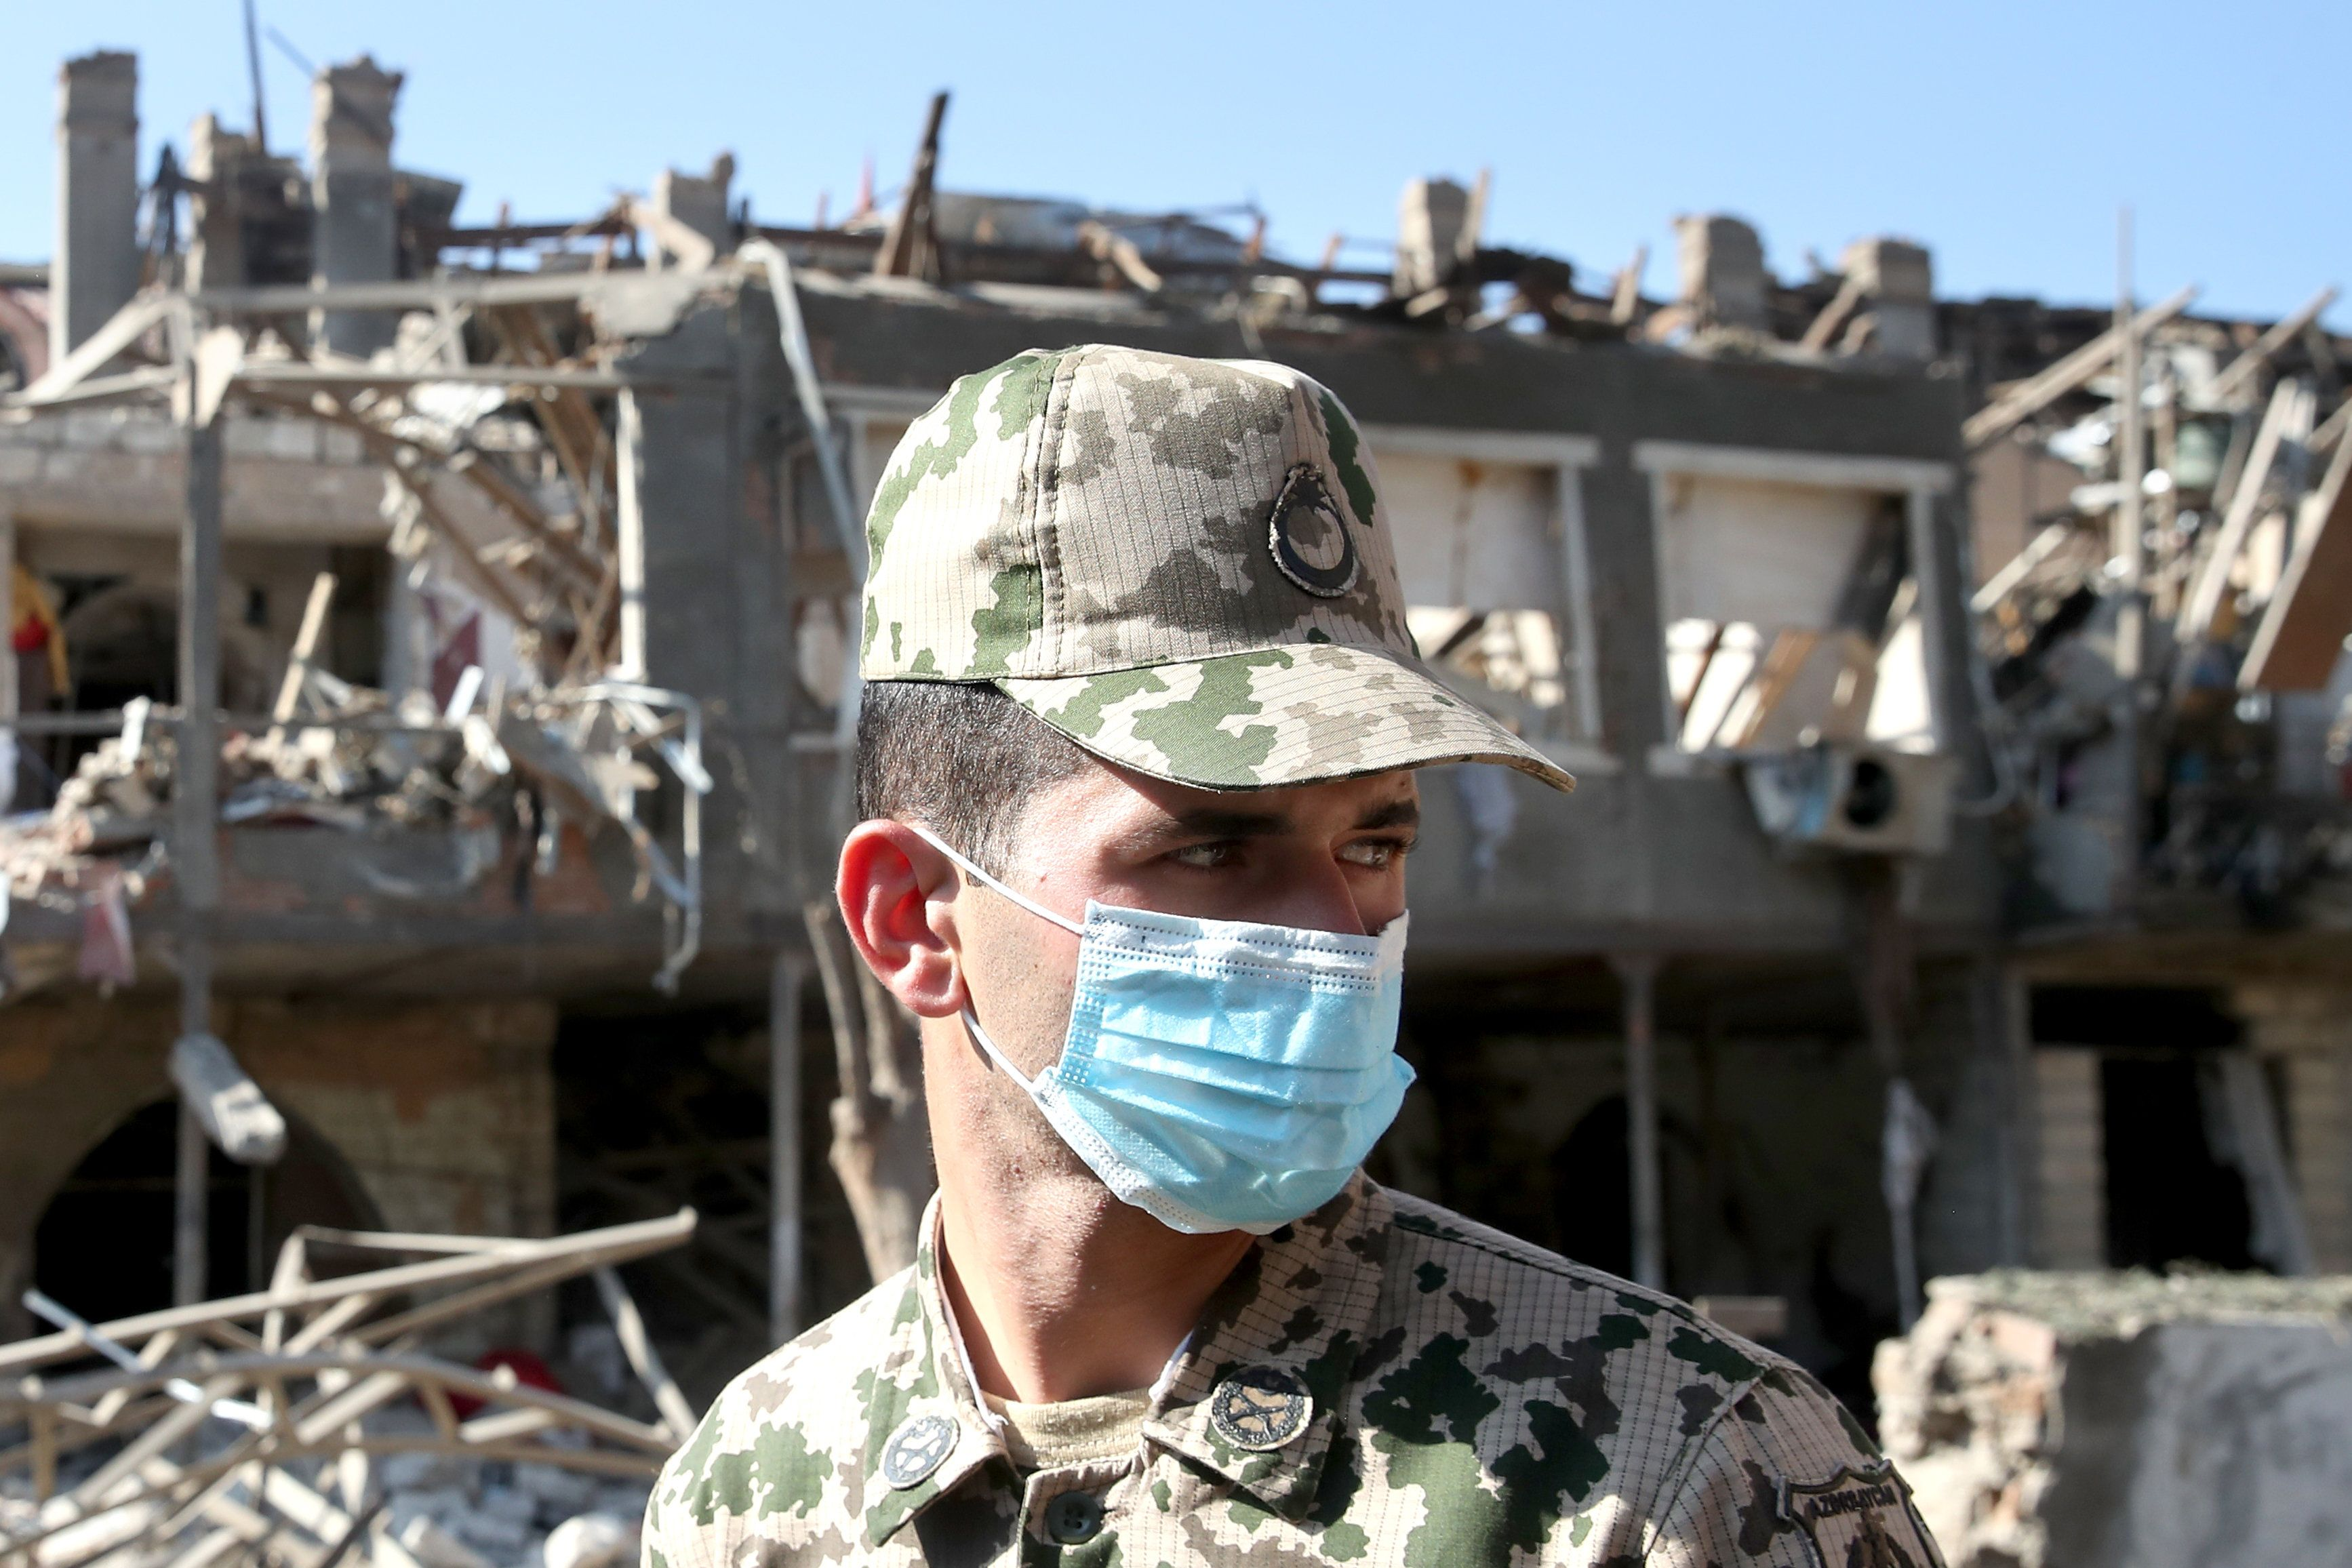 A serviceman examines a residential area of the city damaged in a rocket attack in Ganja, Azerbaijan on 11 October